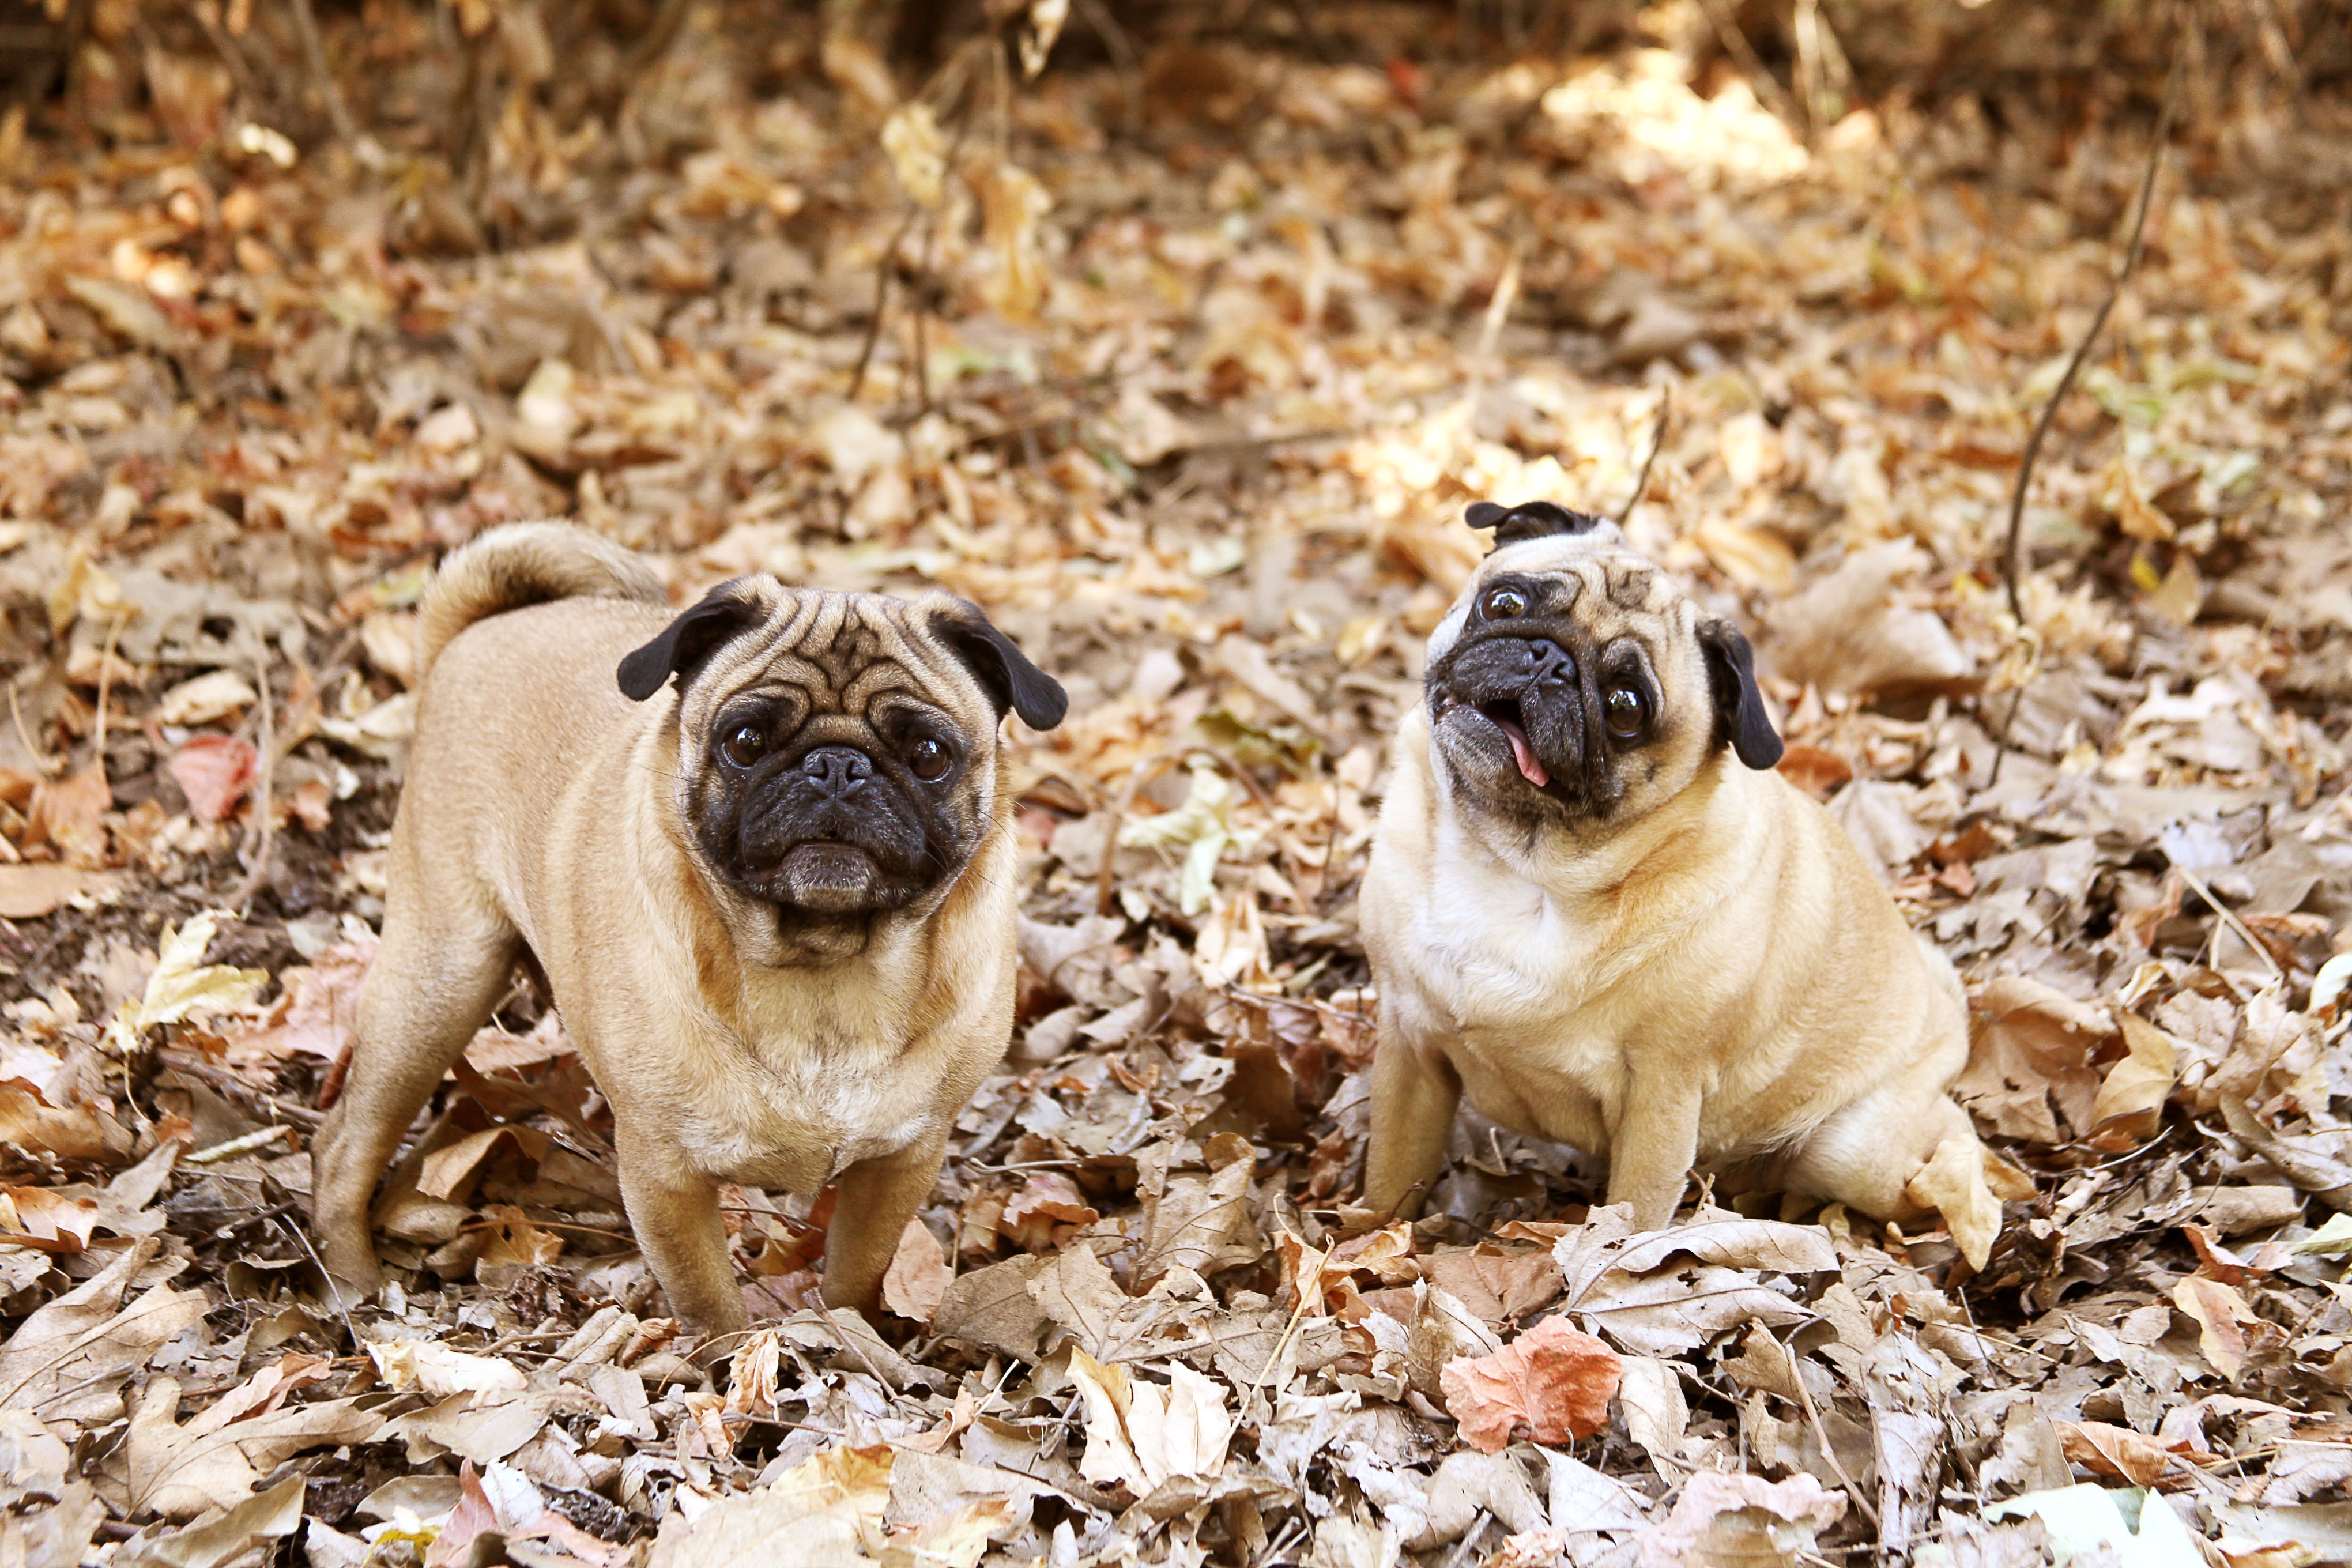 110017 download wallpaper Animals, Pug, Foliage, Dogs, Cool screensavers and pictures for free